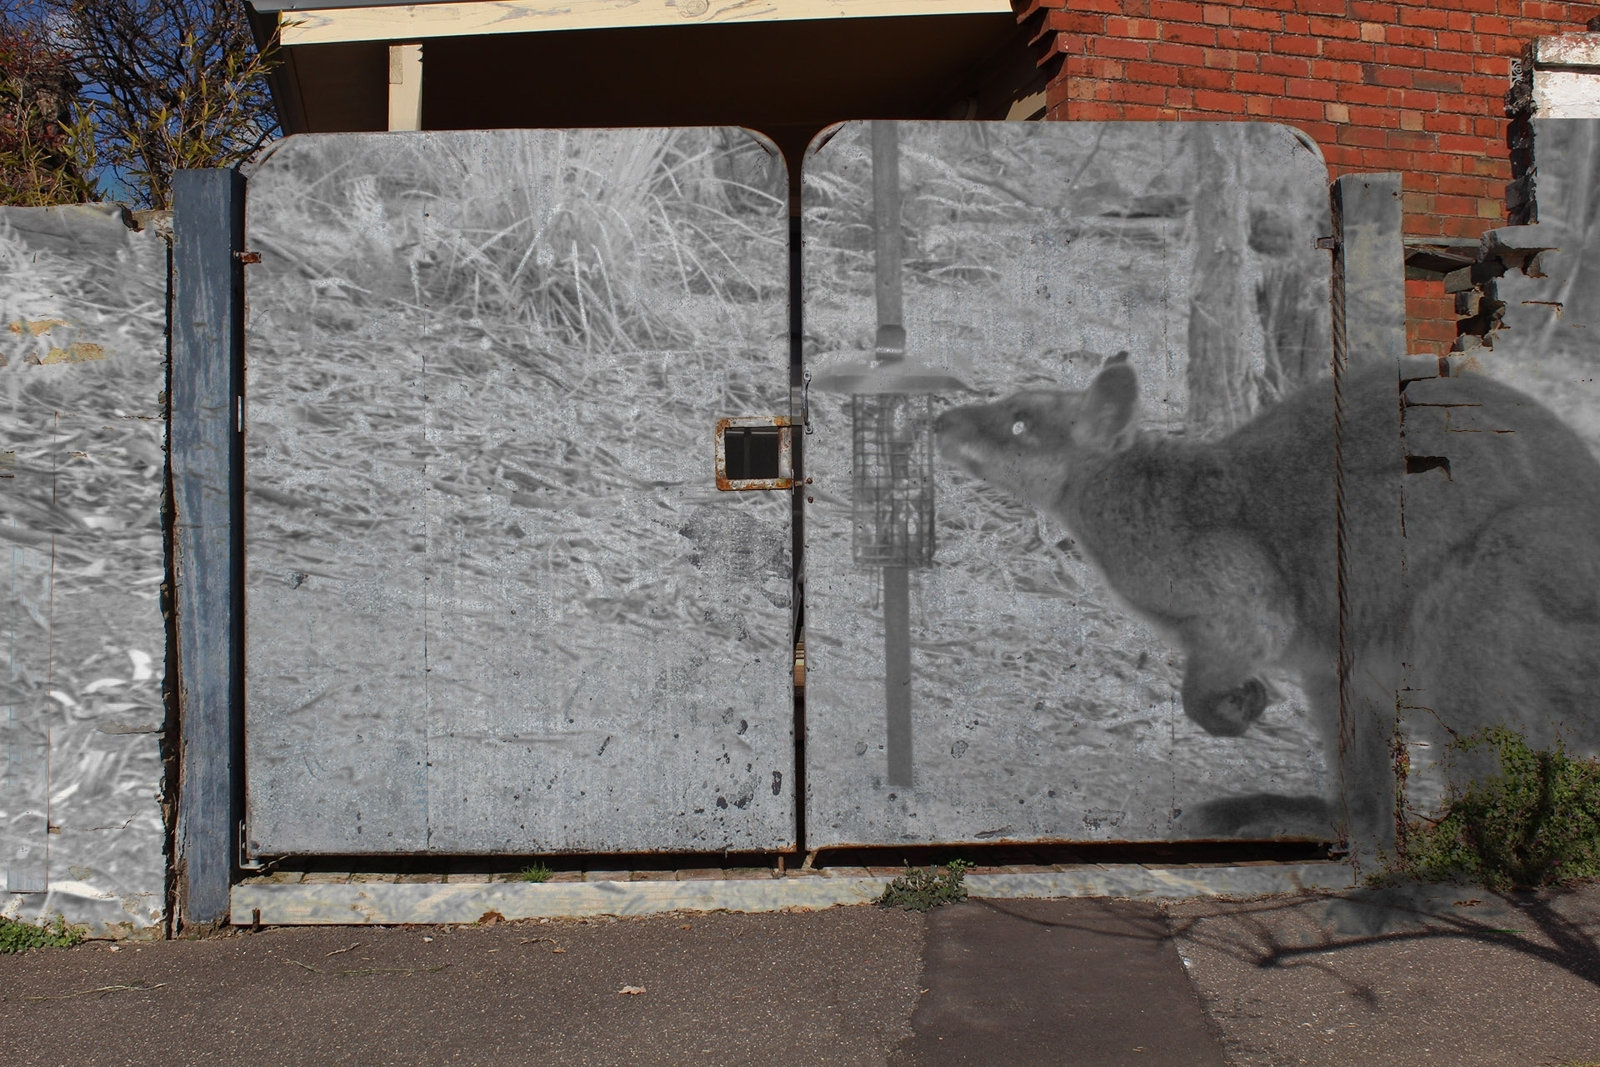 At the Wall of Anthropocene image